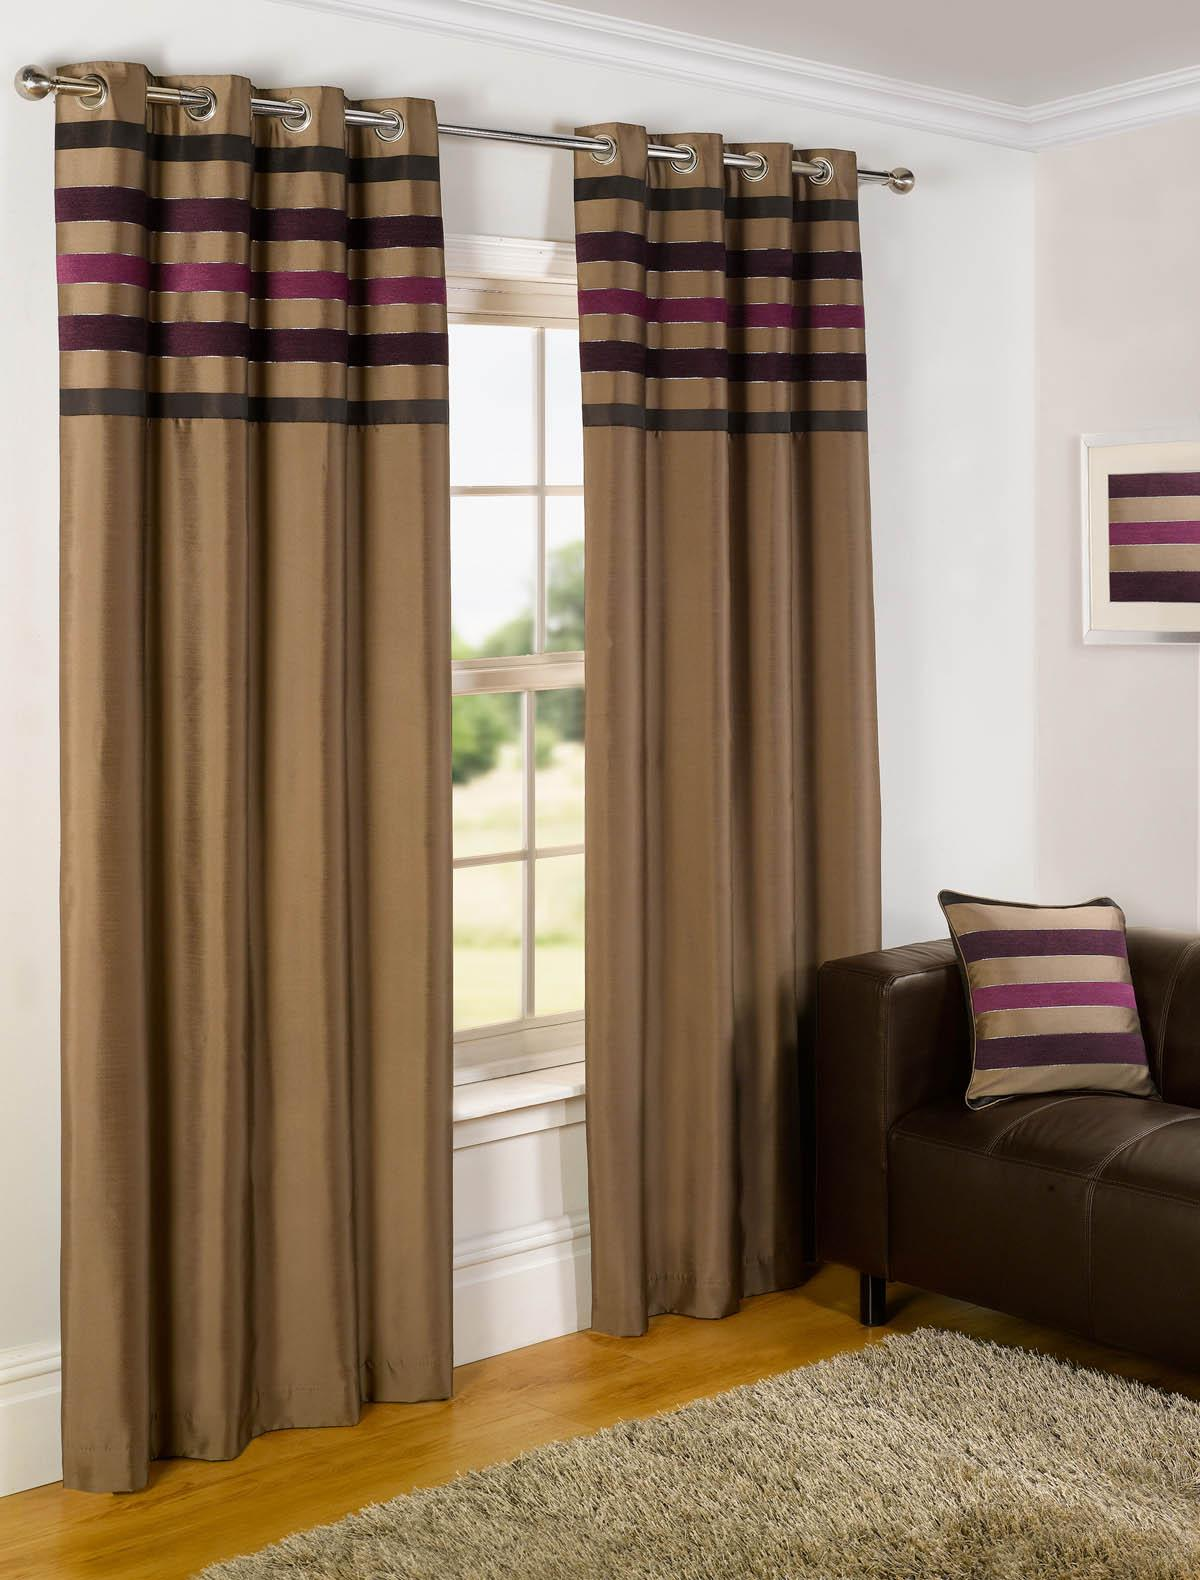 Plum curtains - Madison Ready Made Lined Eyelet Curtains